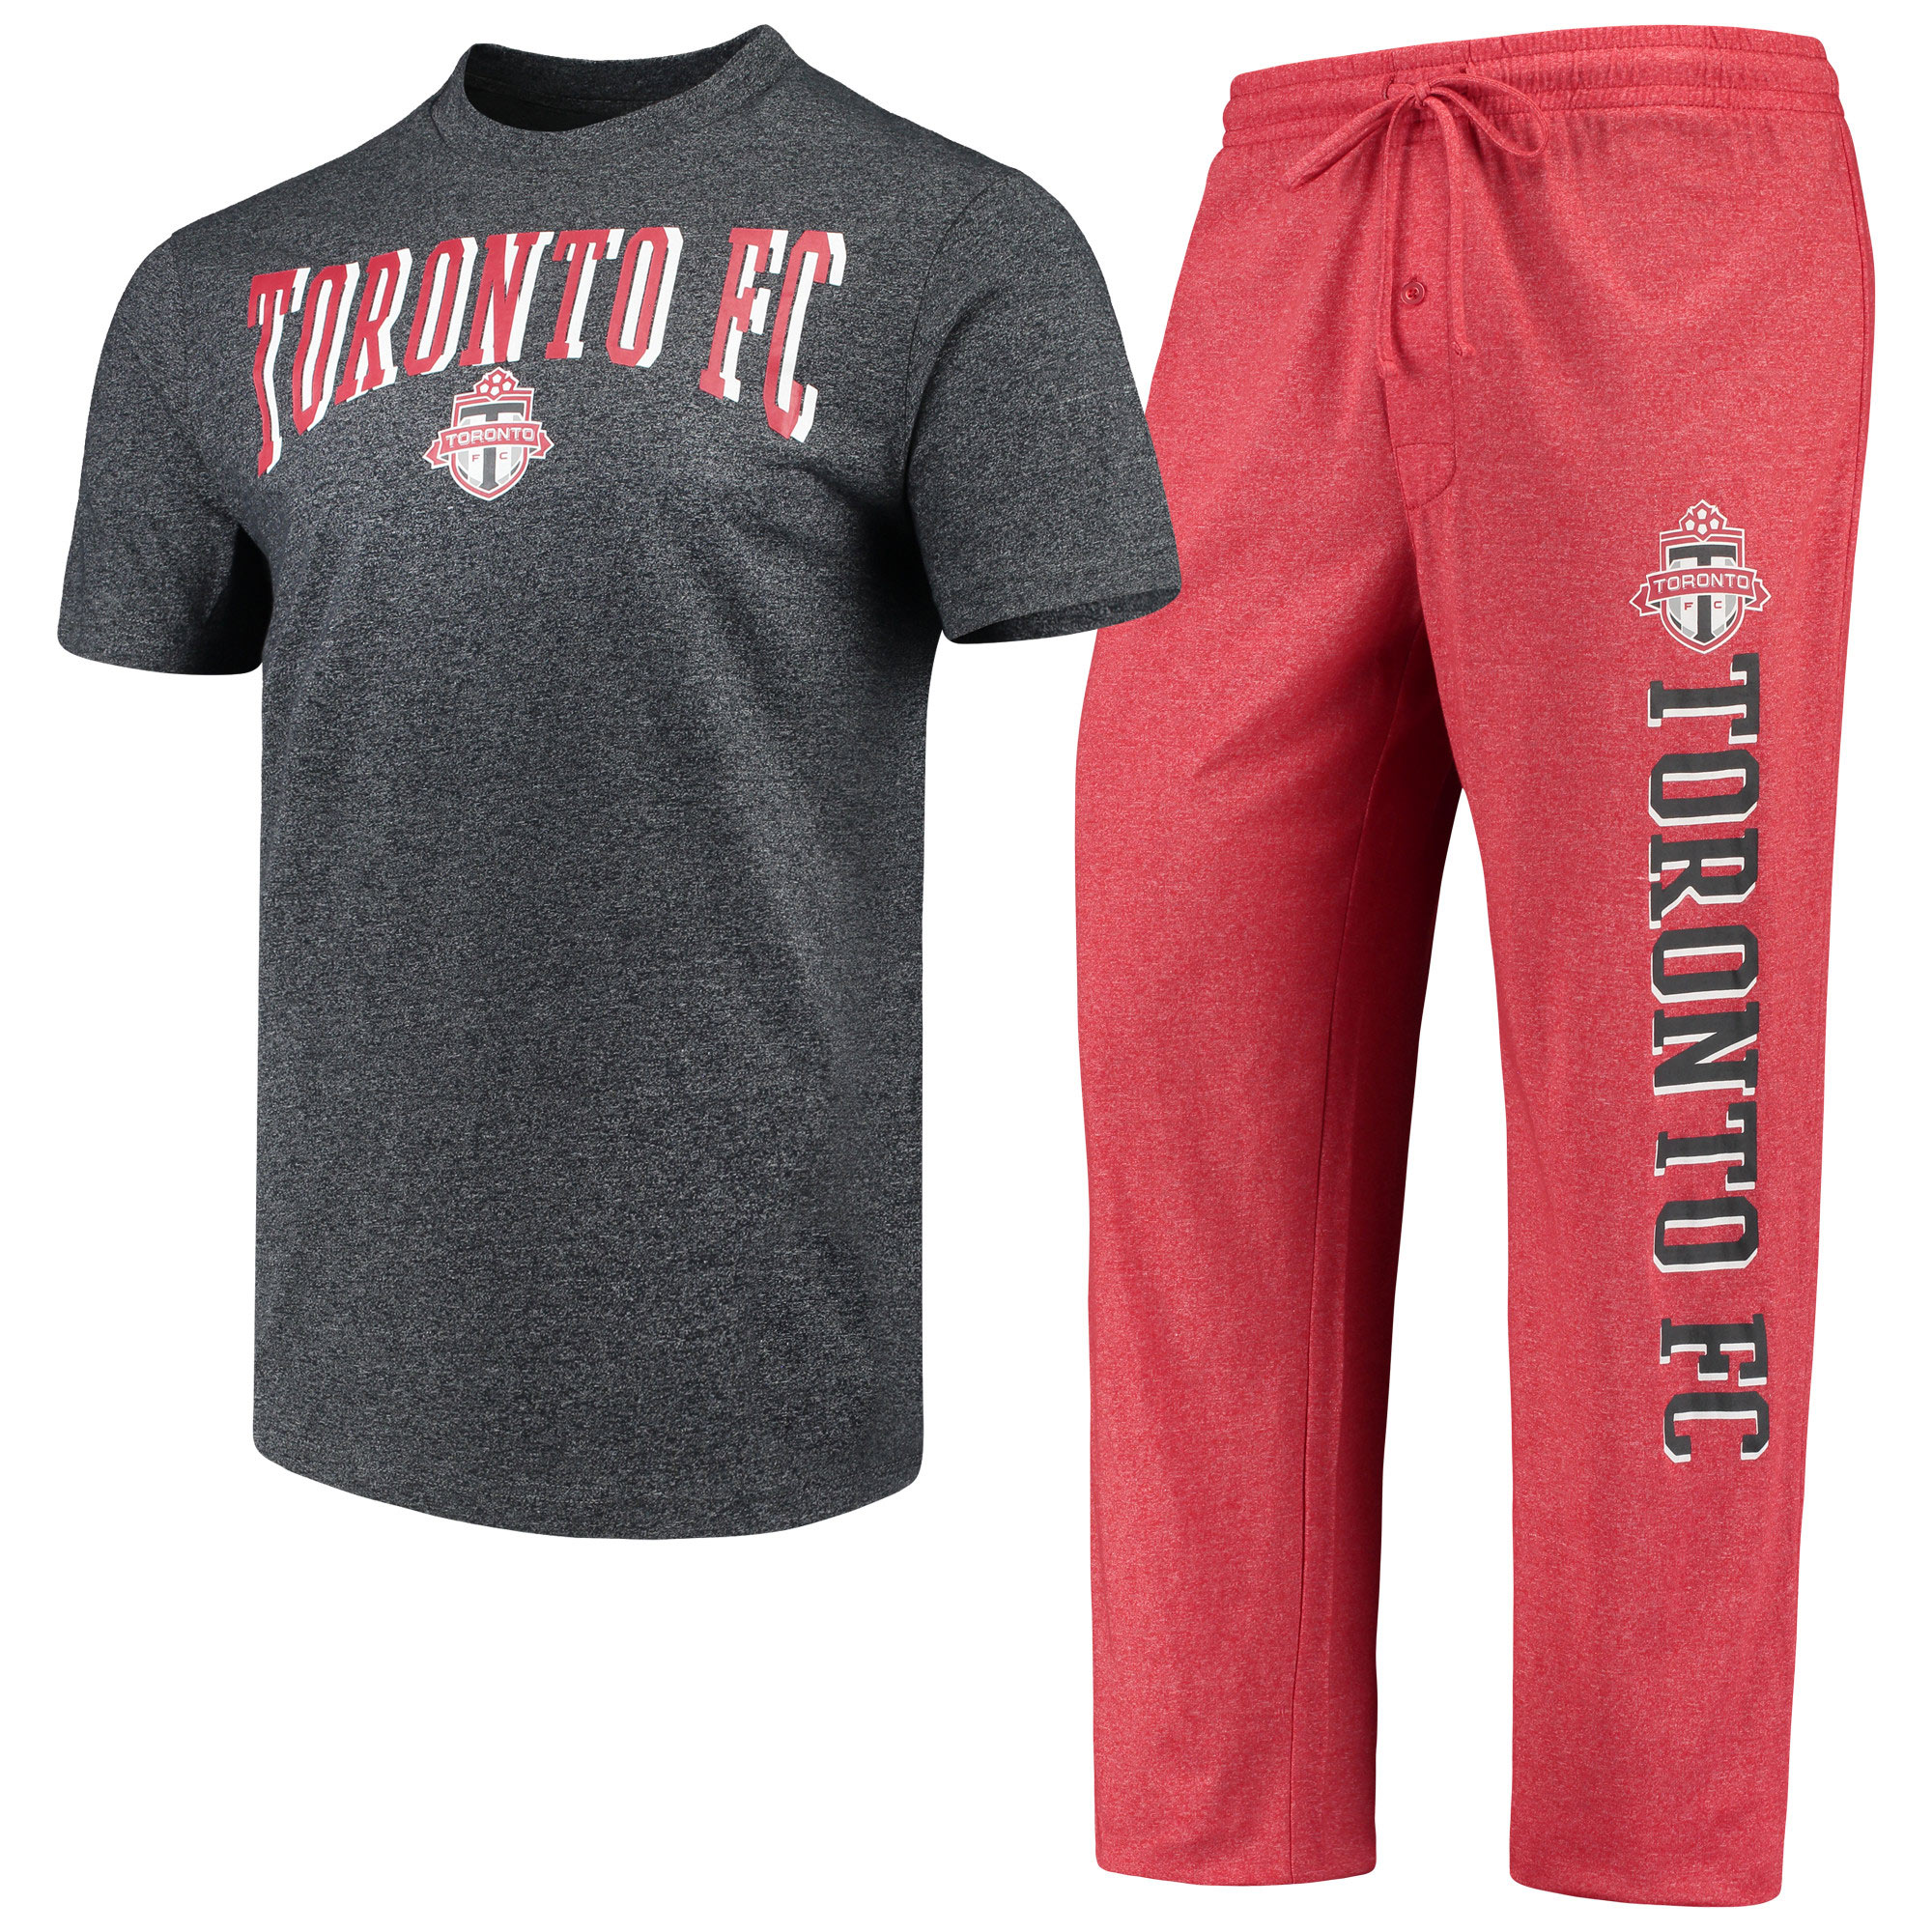 Toronto FC Concepts Sport Spar Pants & Top Sleep Set - Red/Charcoal